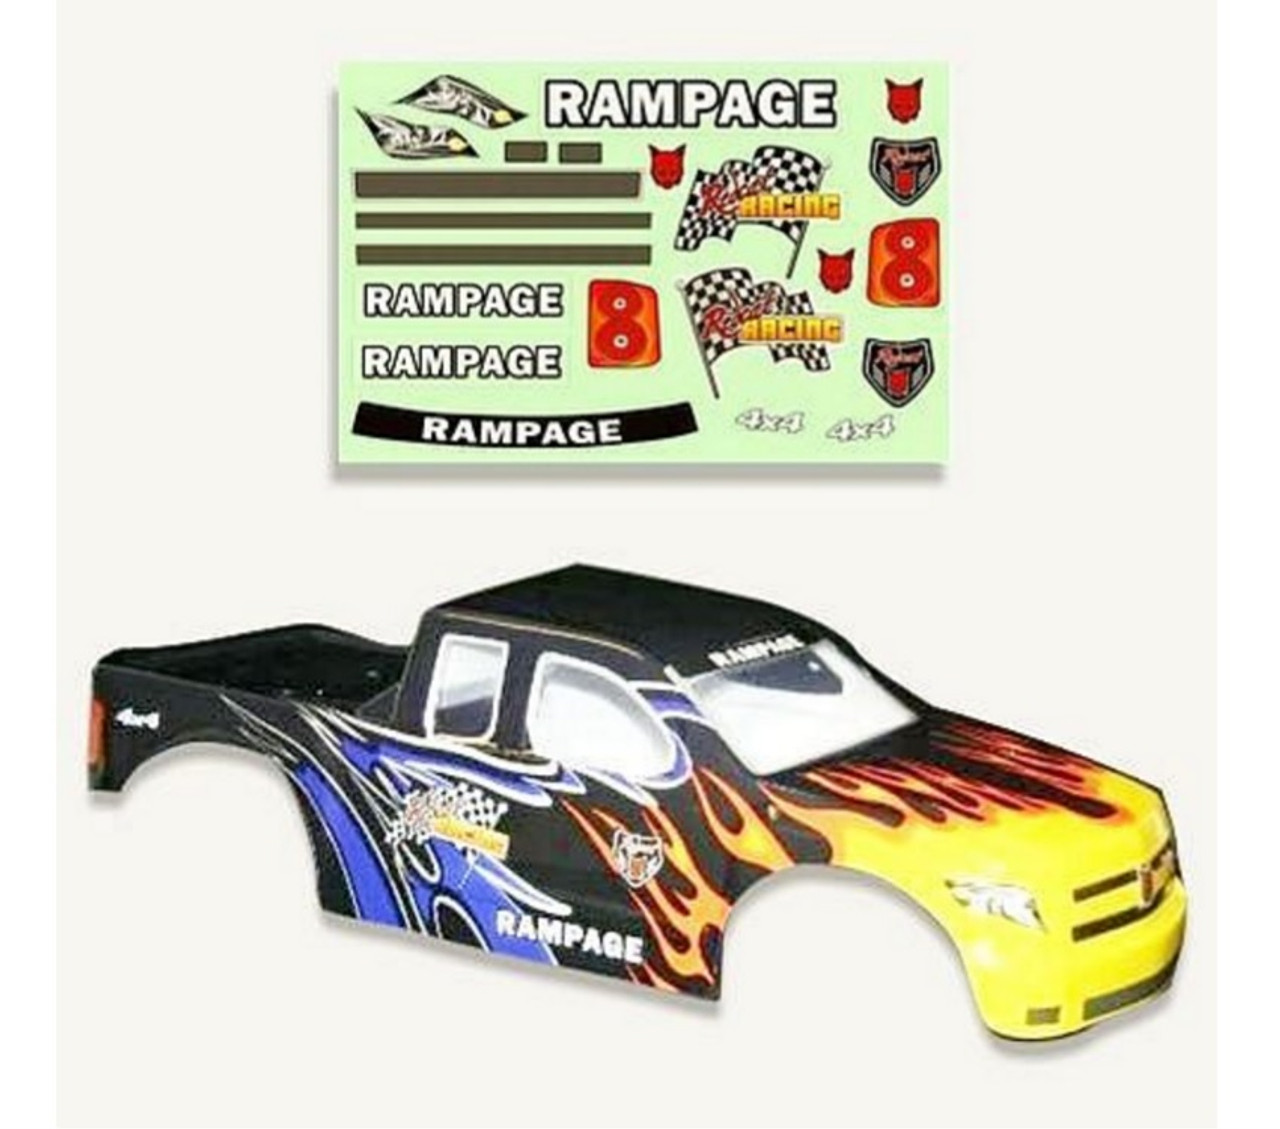 1/5 Rampage RC Truck Body Shell Black with Flames XT MT XT-E & MT PRO